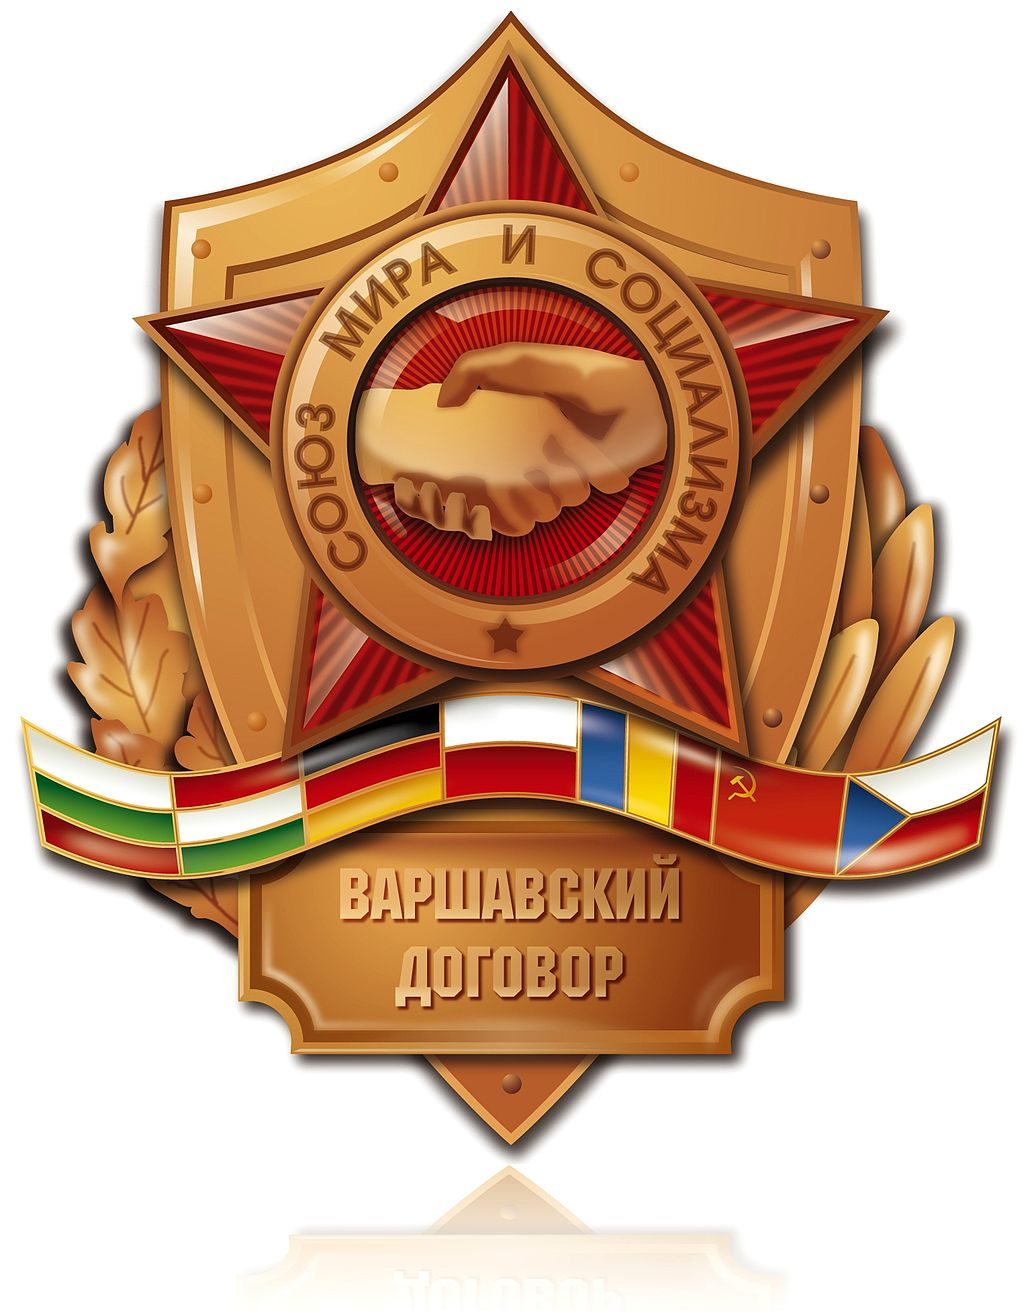 Warsaw Pact badge